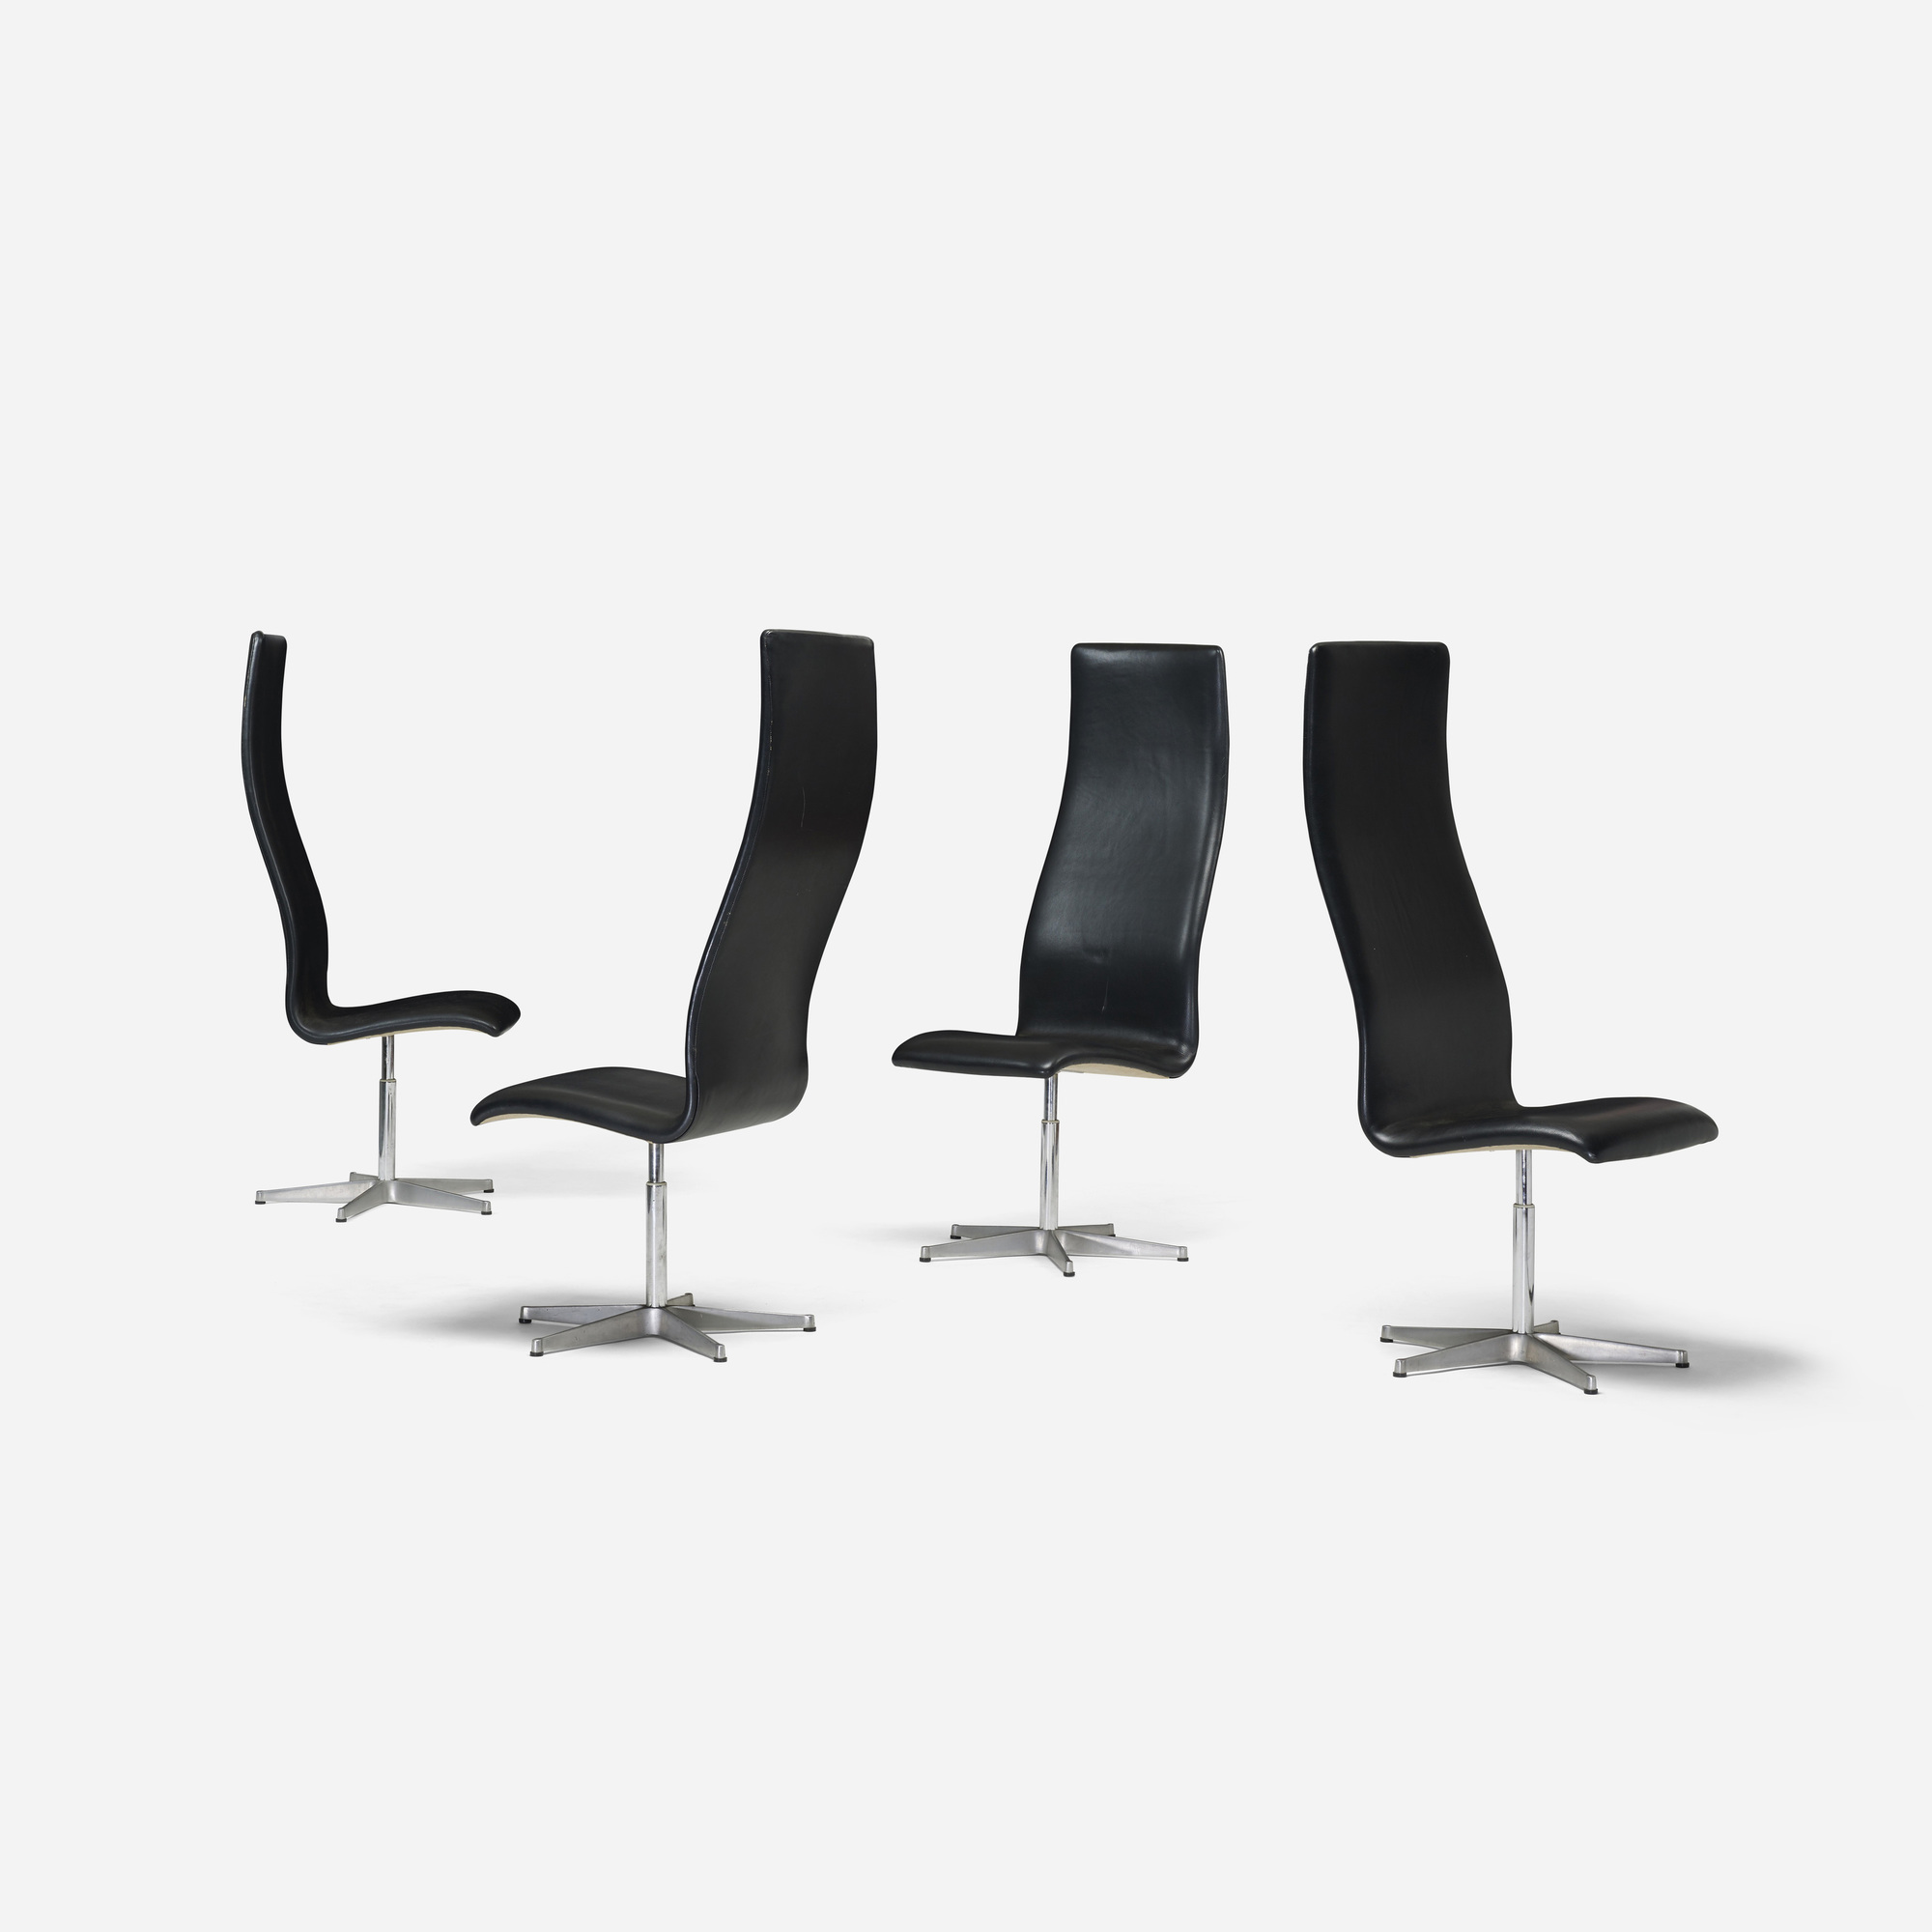 115: Arne Jacobsen / Oxford chairs model 7403, set of four (2 of 3)